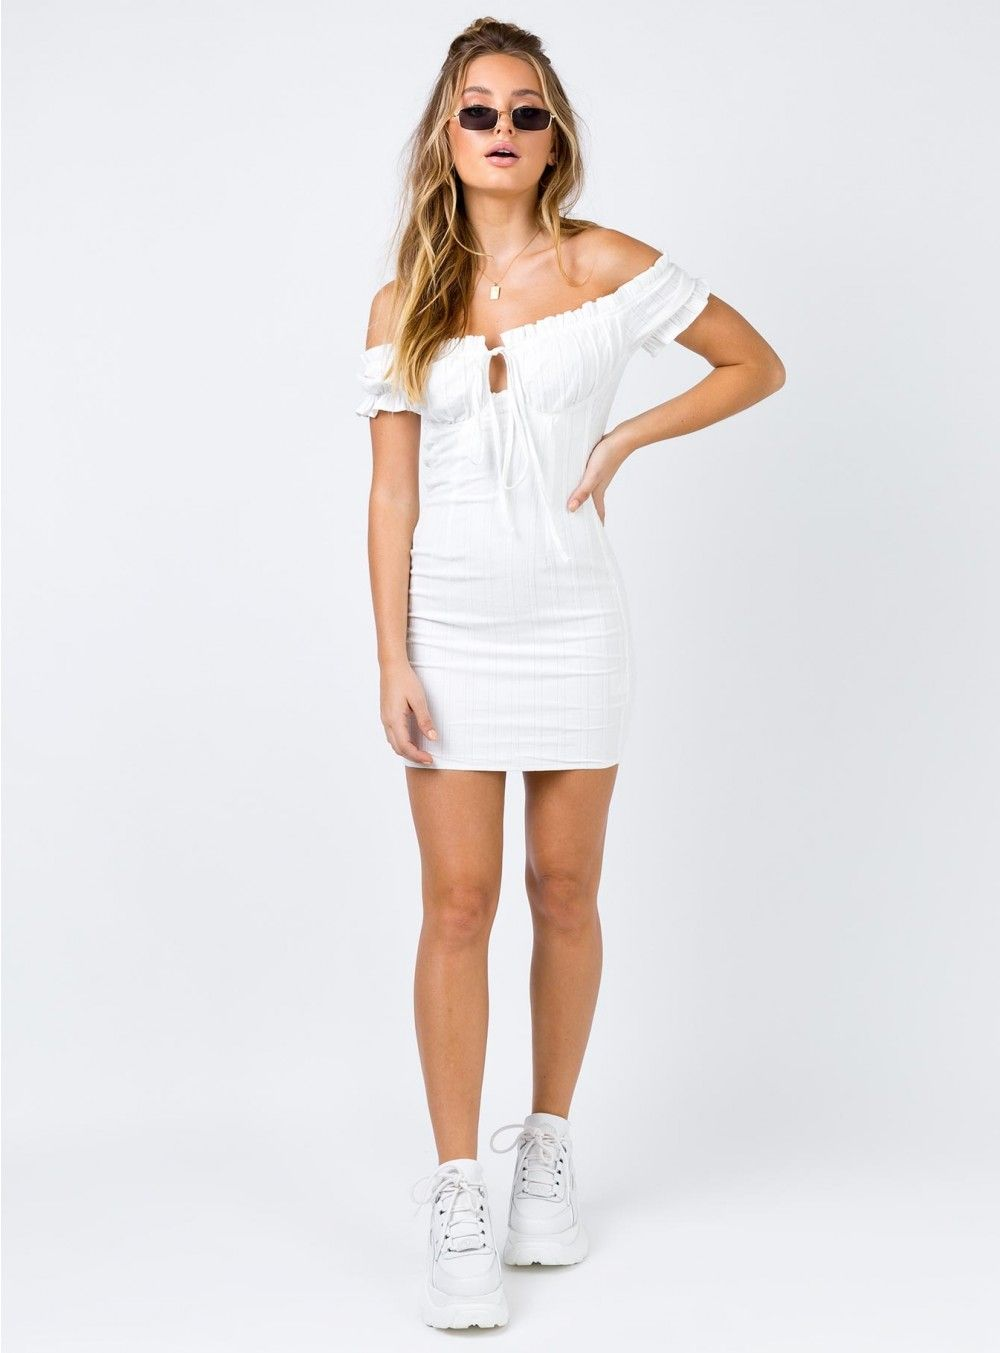 aa8831c5a0 The Kipp Mini Dress - full view